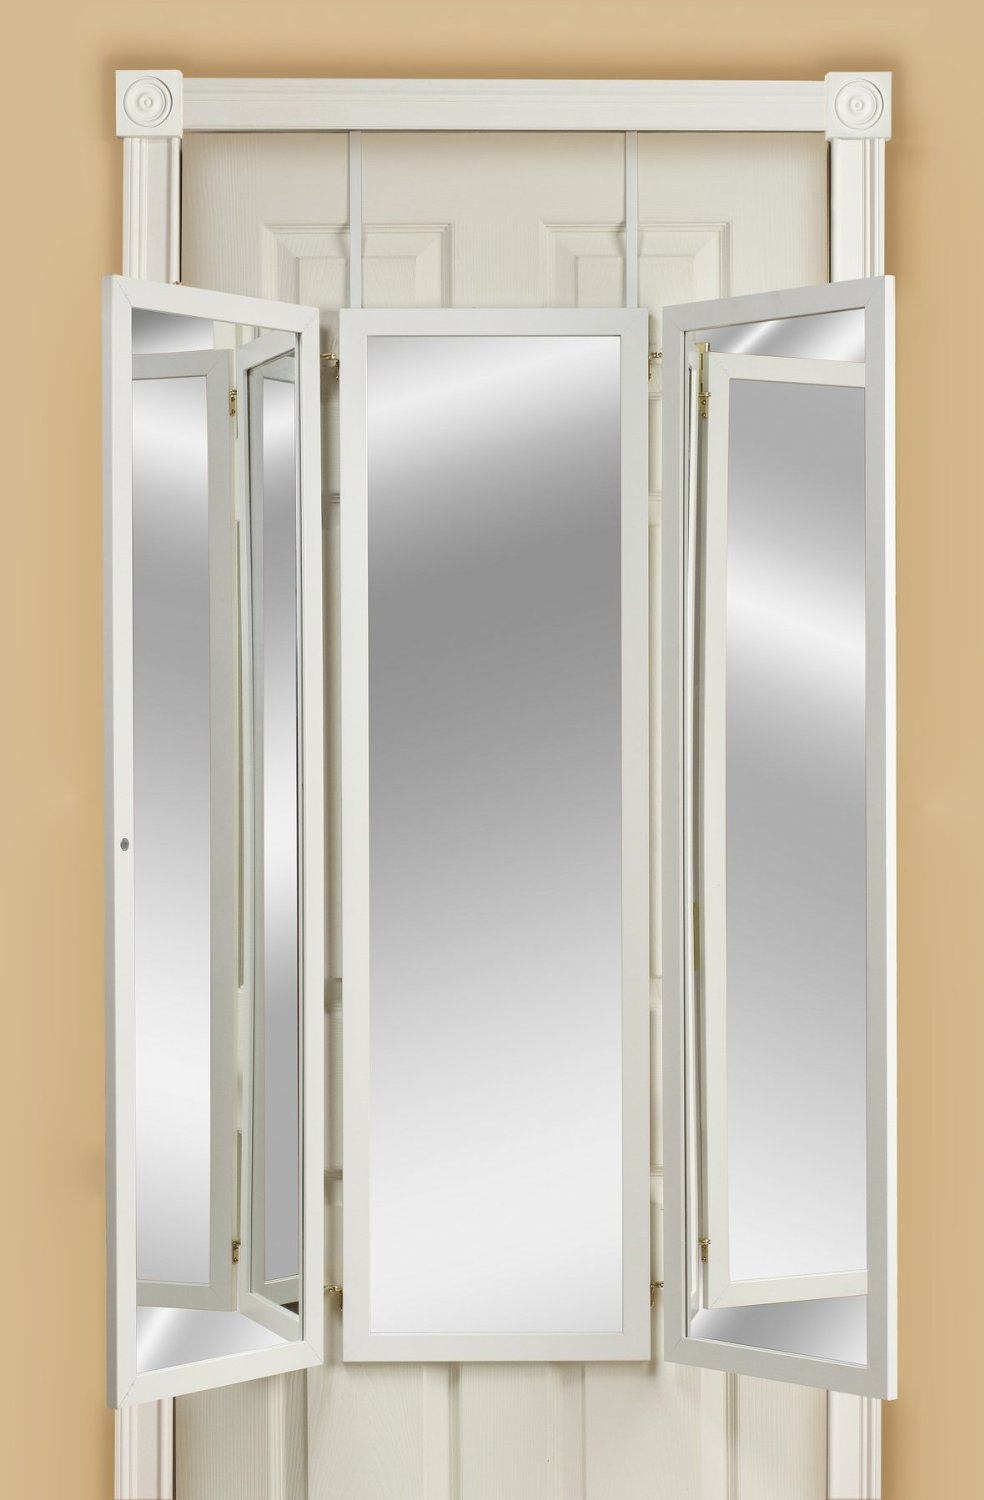 Mirrotek 3VU1448WT Triple View Professional Over The Door Dressing Mirror with 4 Mirrors, White